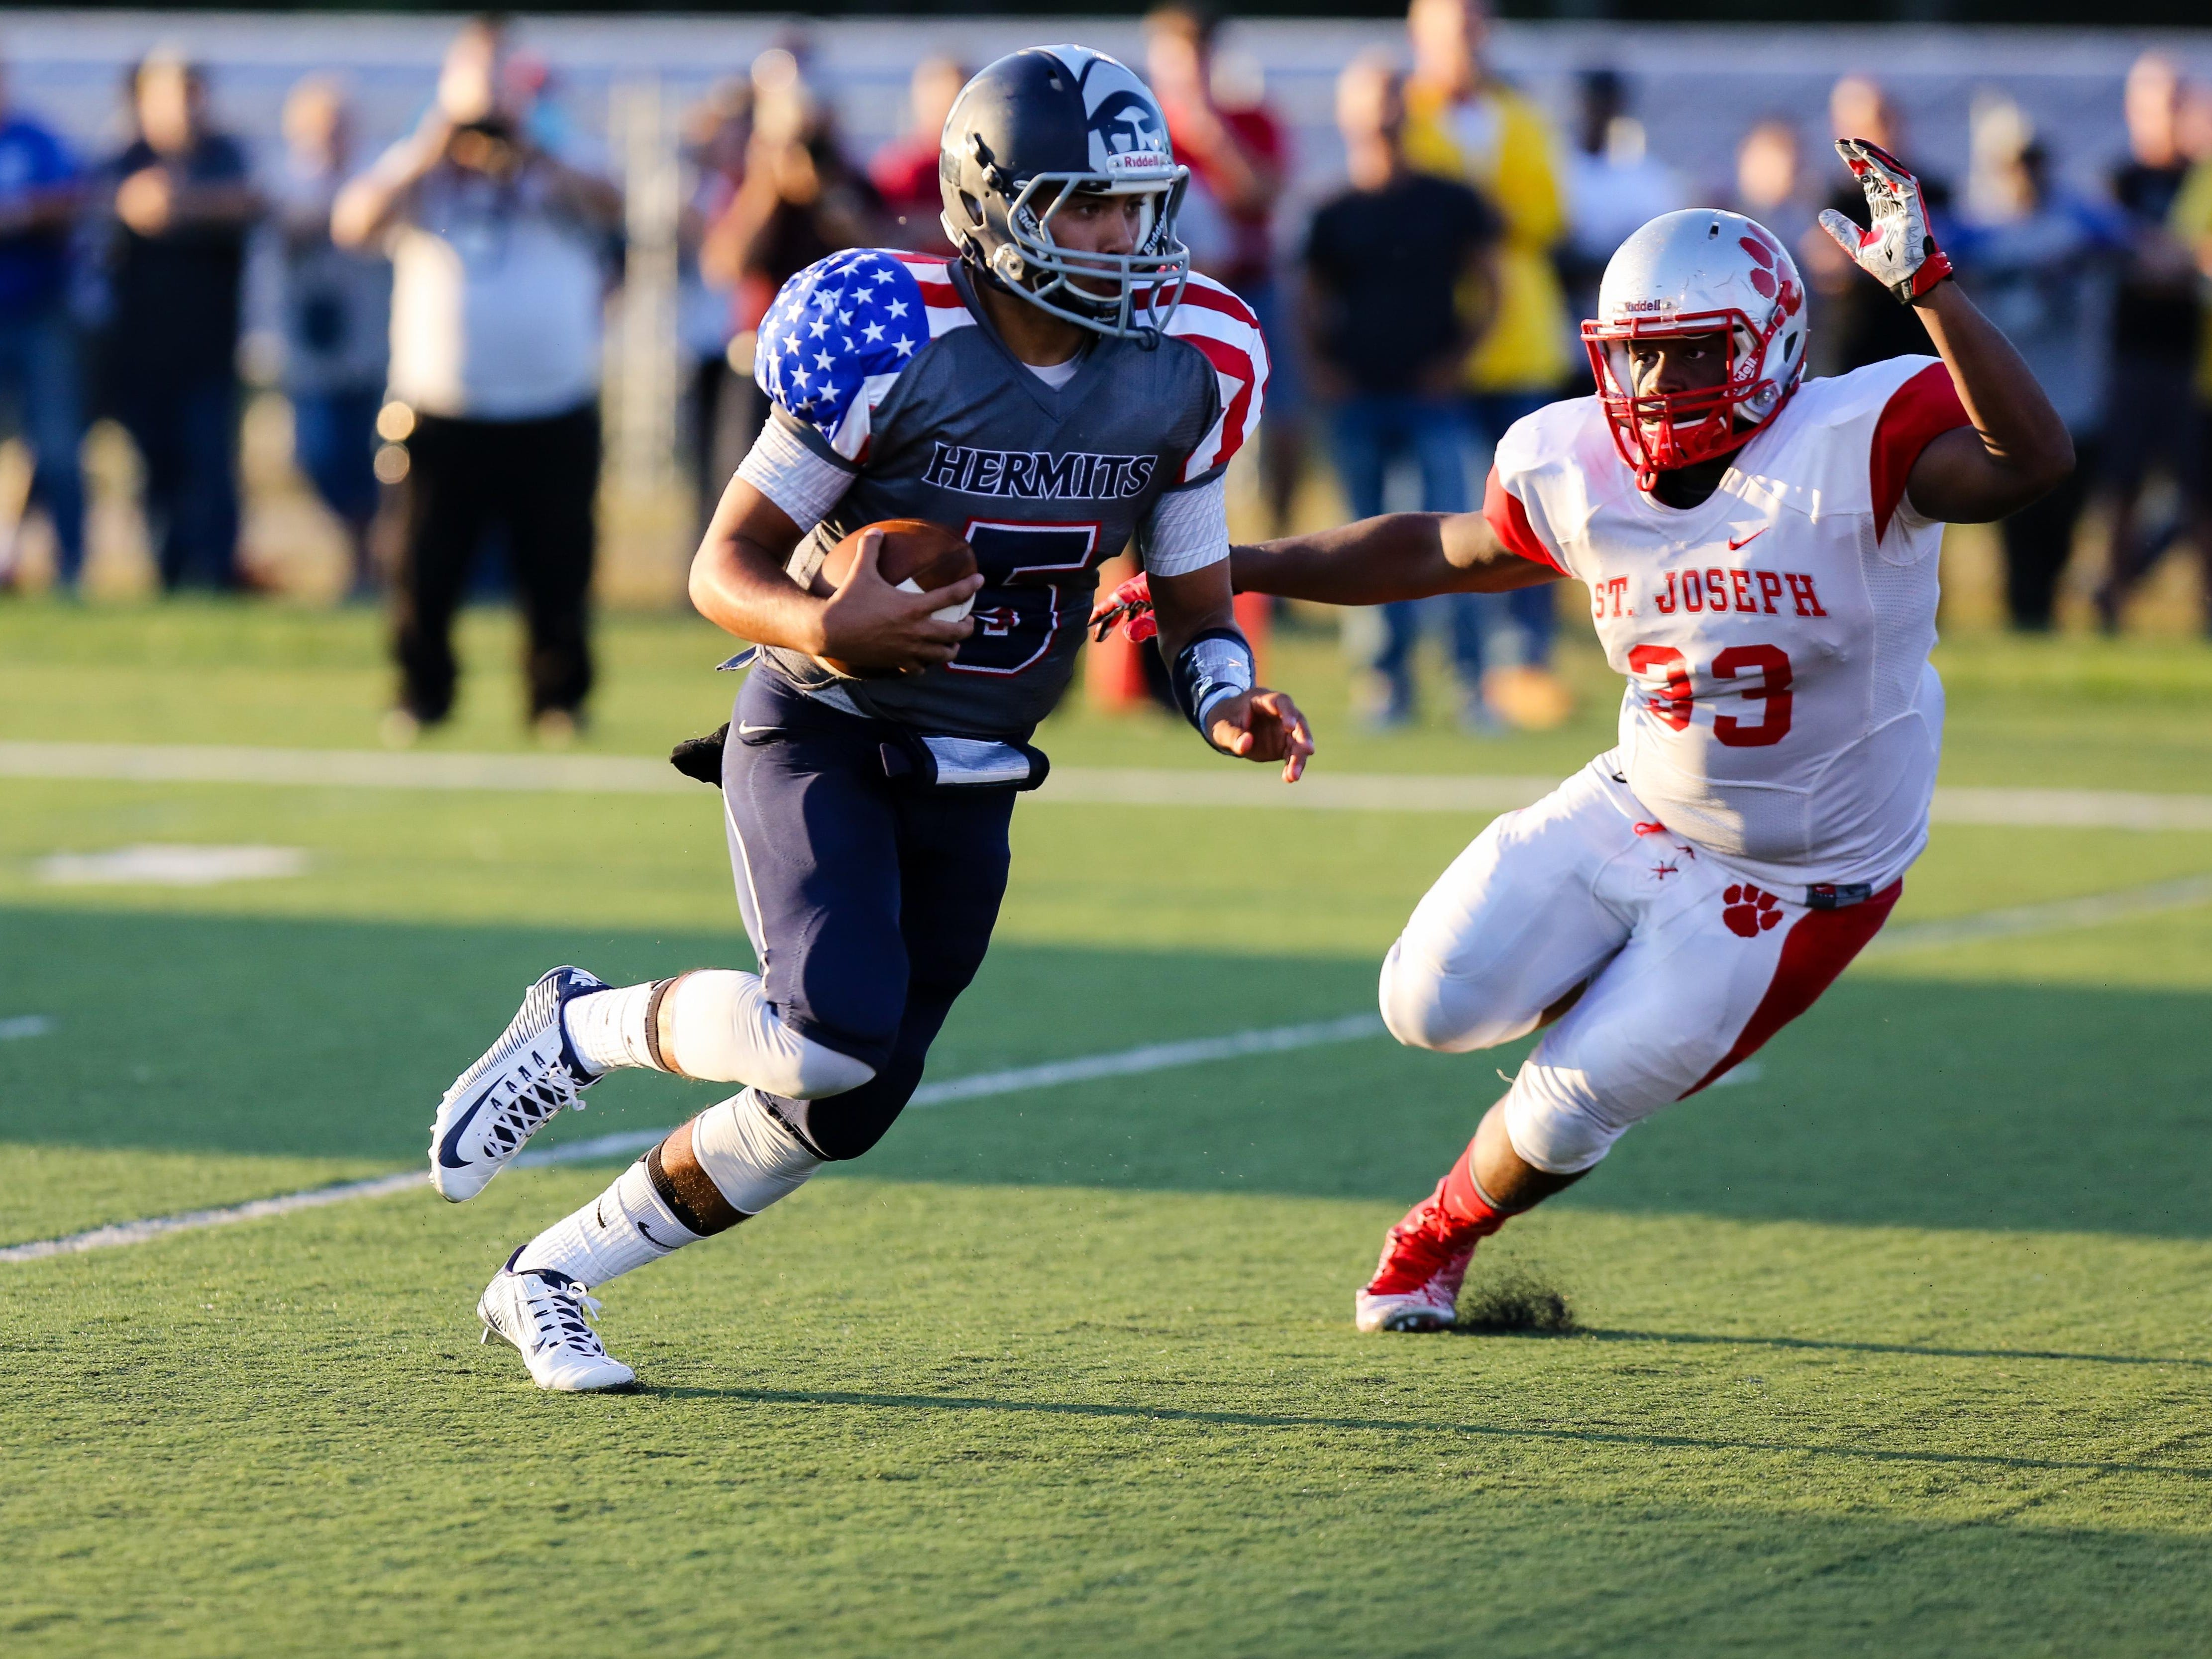 St. Augustine quarterback Jose Tabora (5) looks for open space in the season-opening win against St. Joseph. The Hermits took a 3-0 record into Thursday's game against Ocean City.